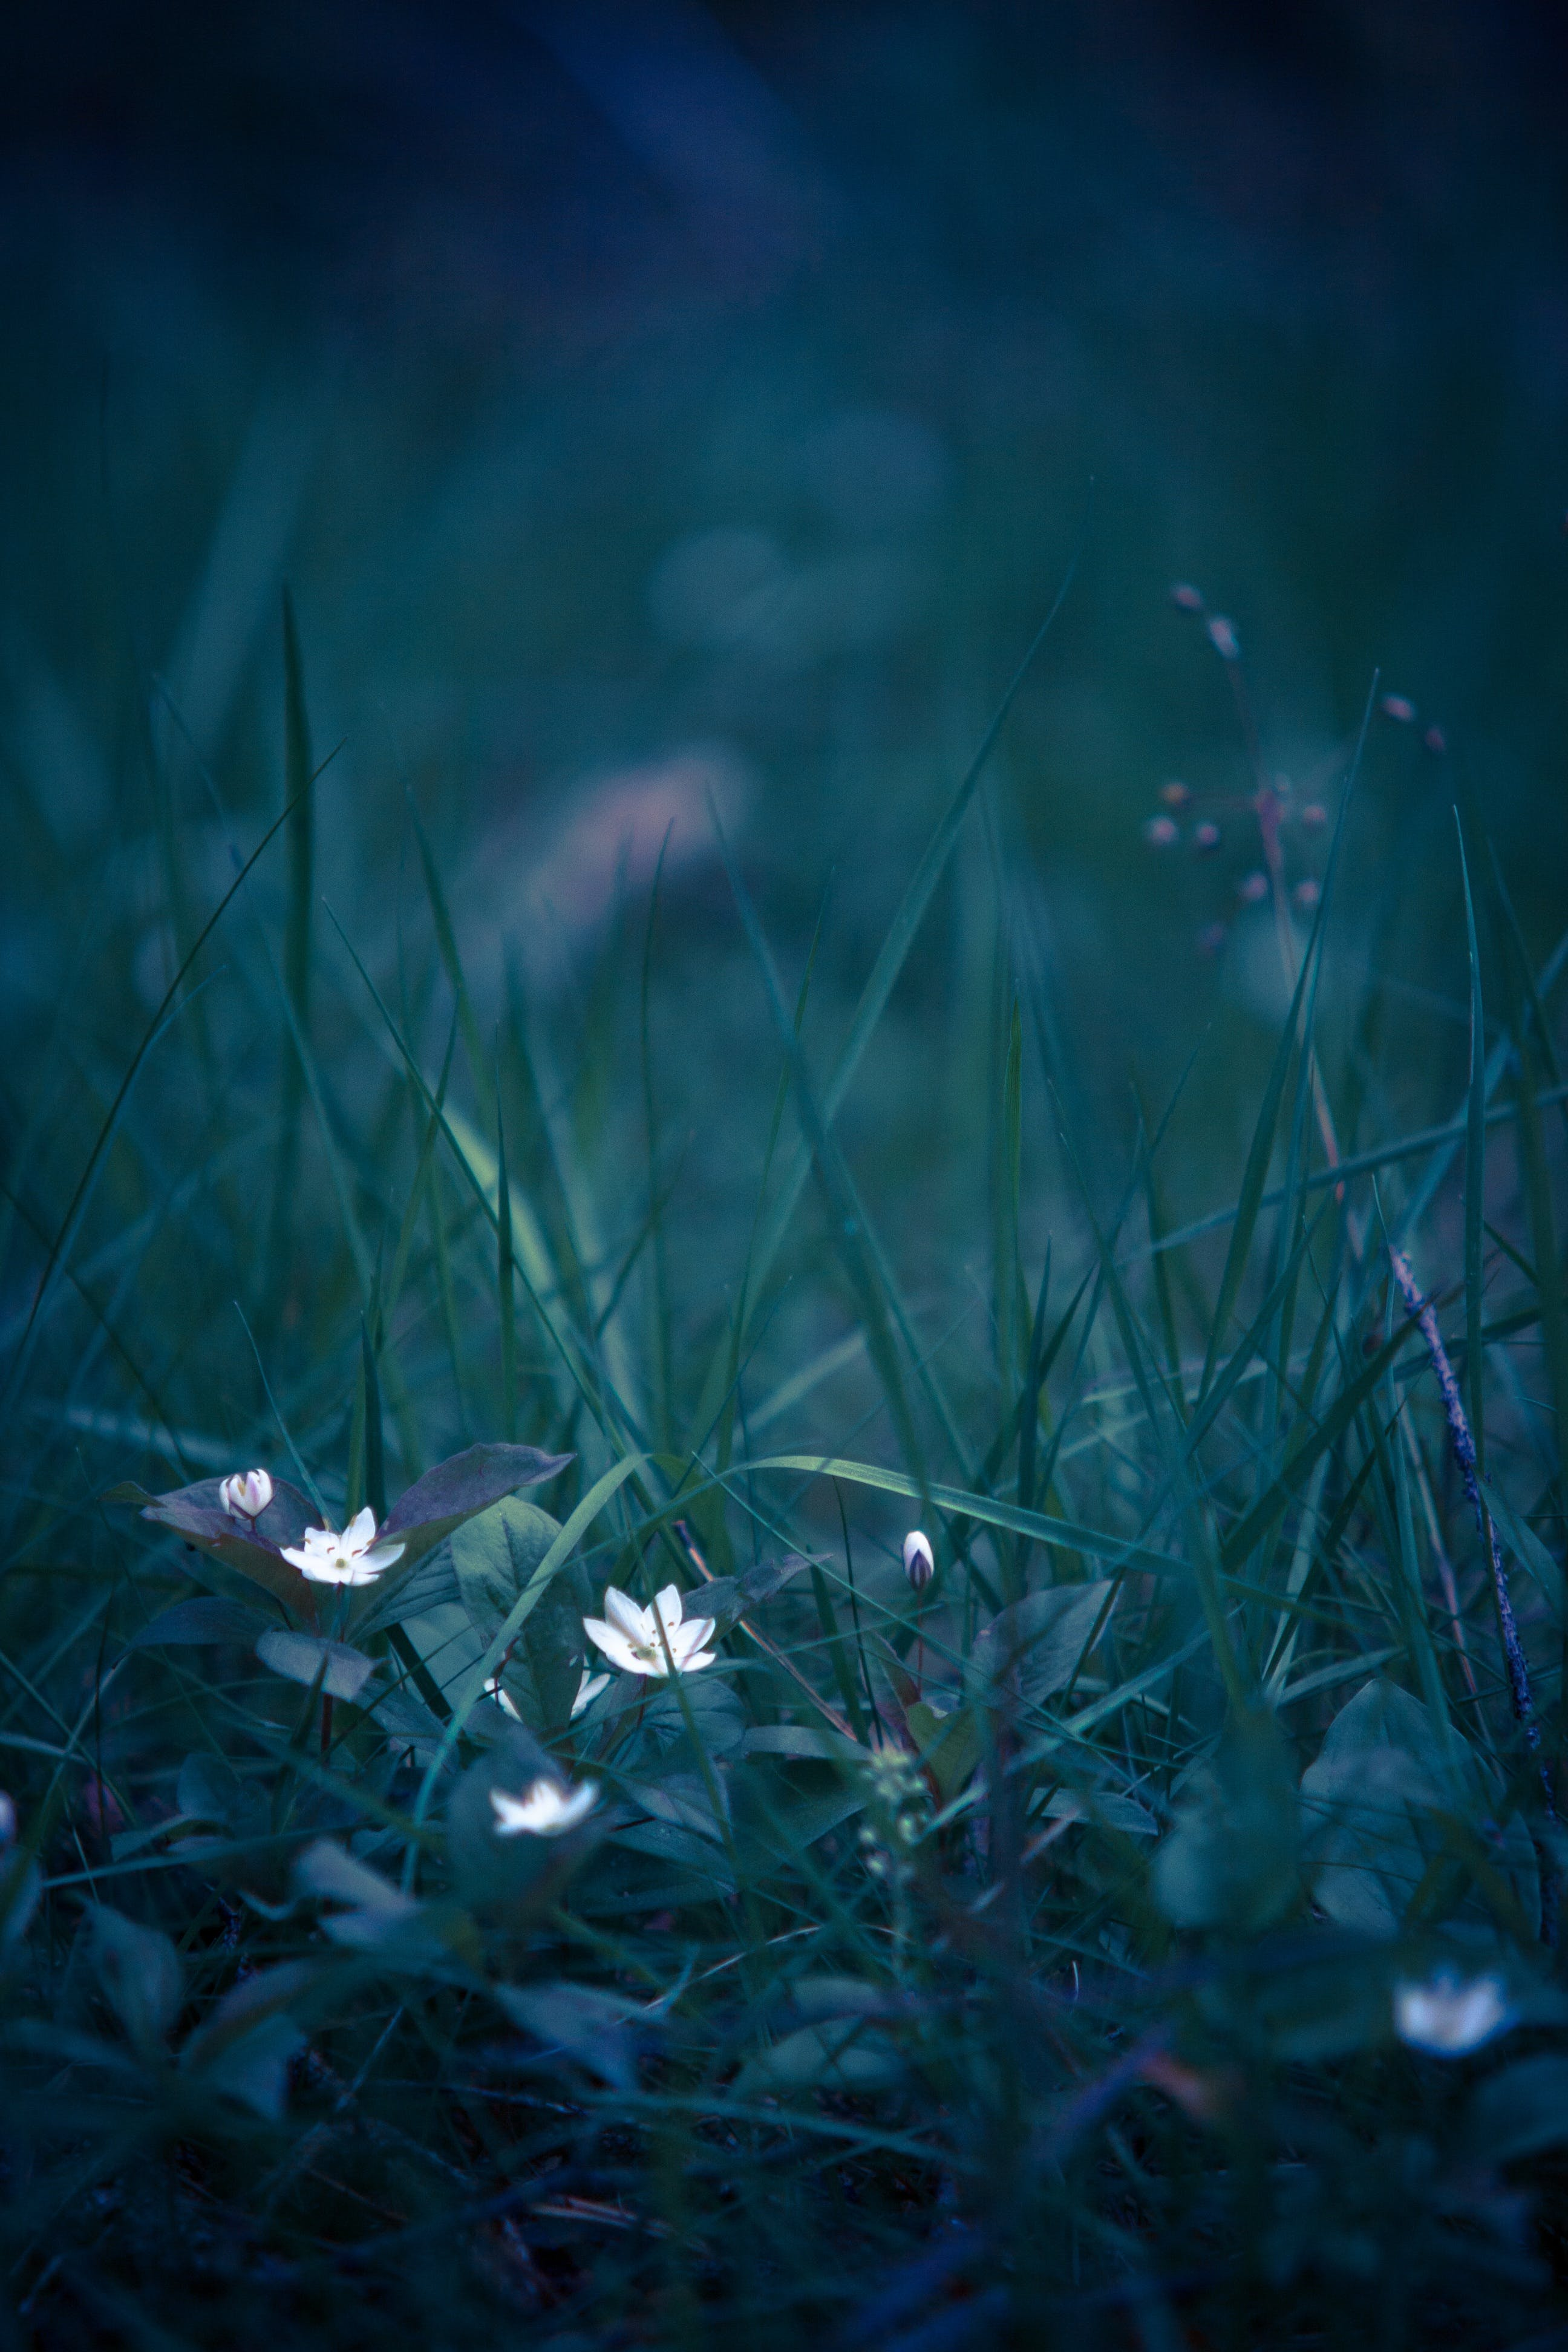 White Petaled Flower on Grass